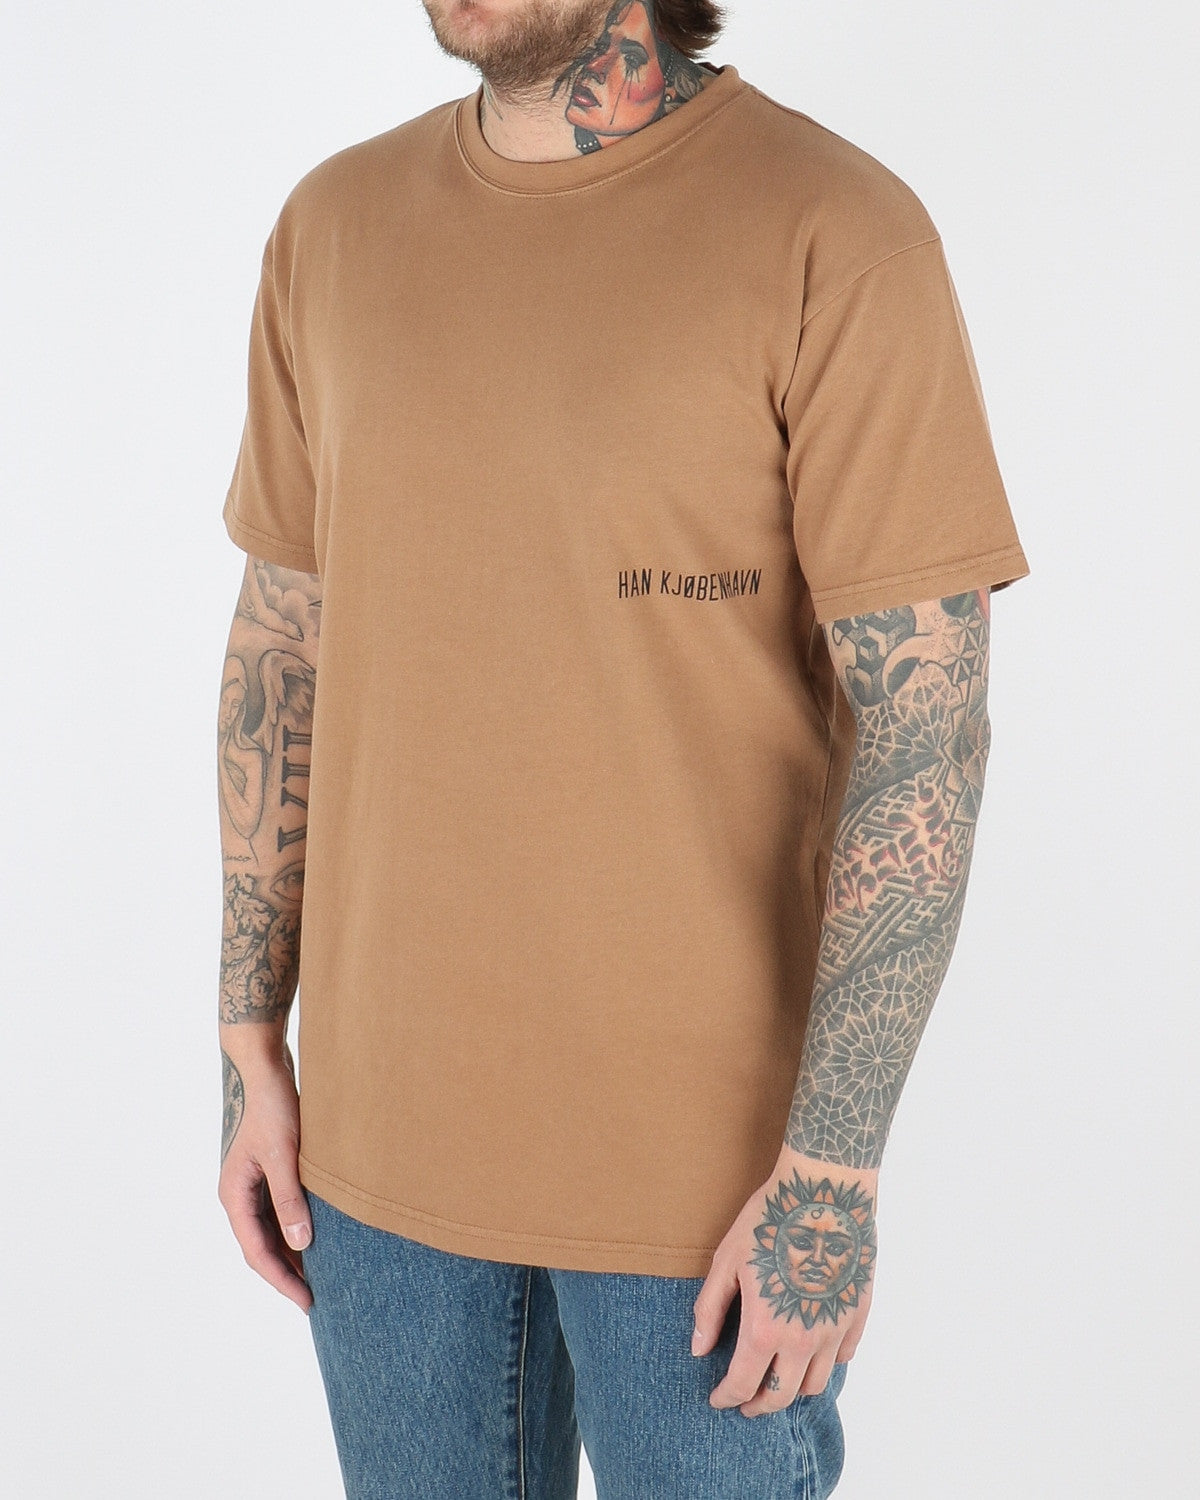 han kjobenhavn_casual t-shirt_brown small chest logo_view_2_2